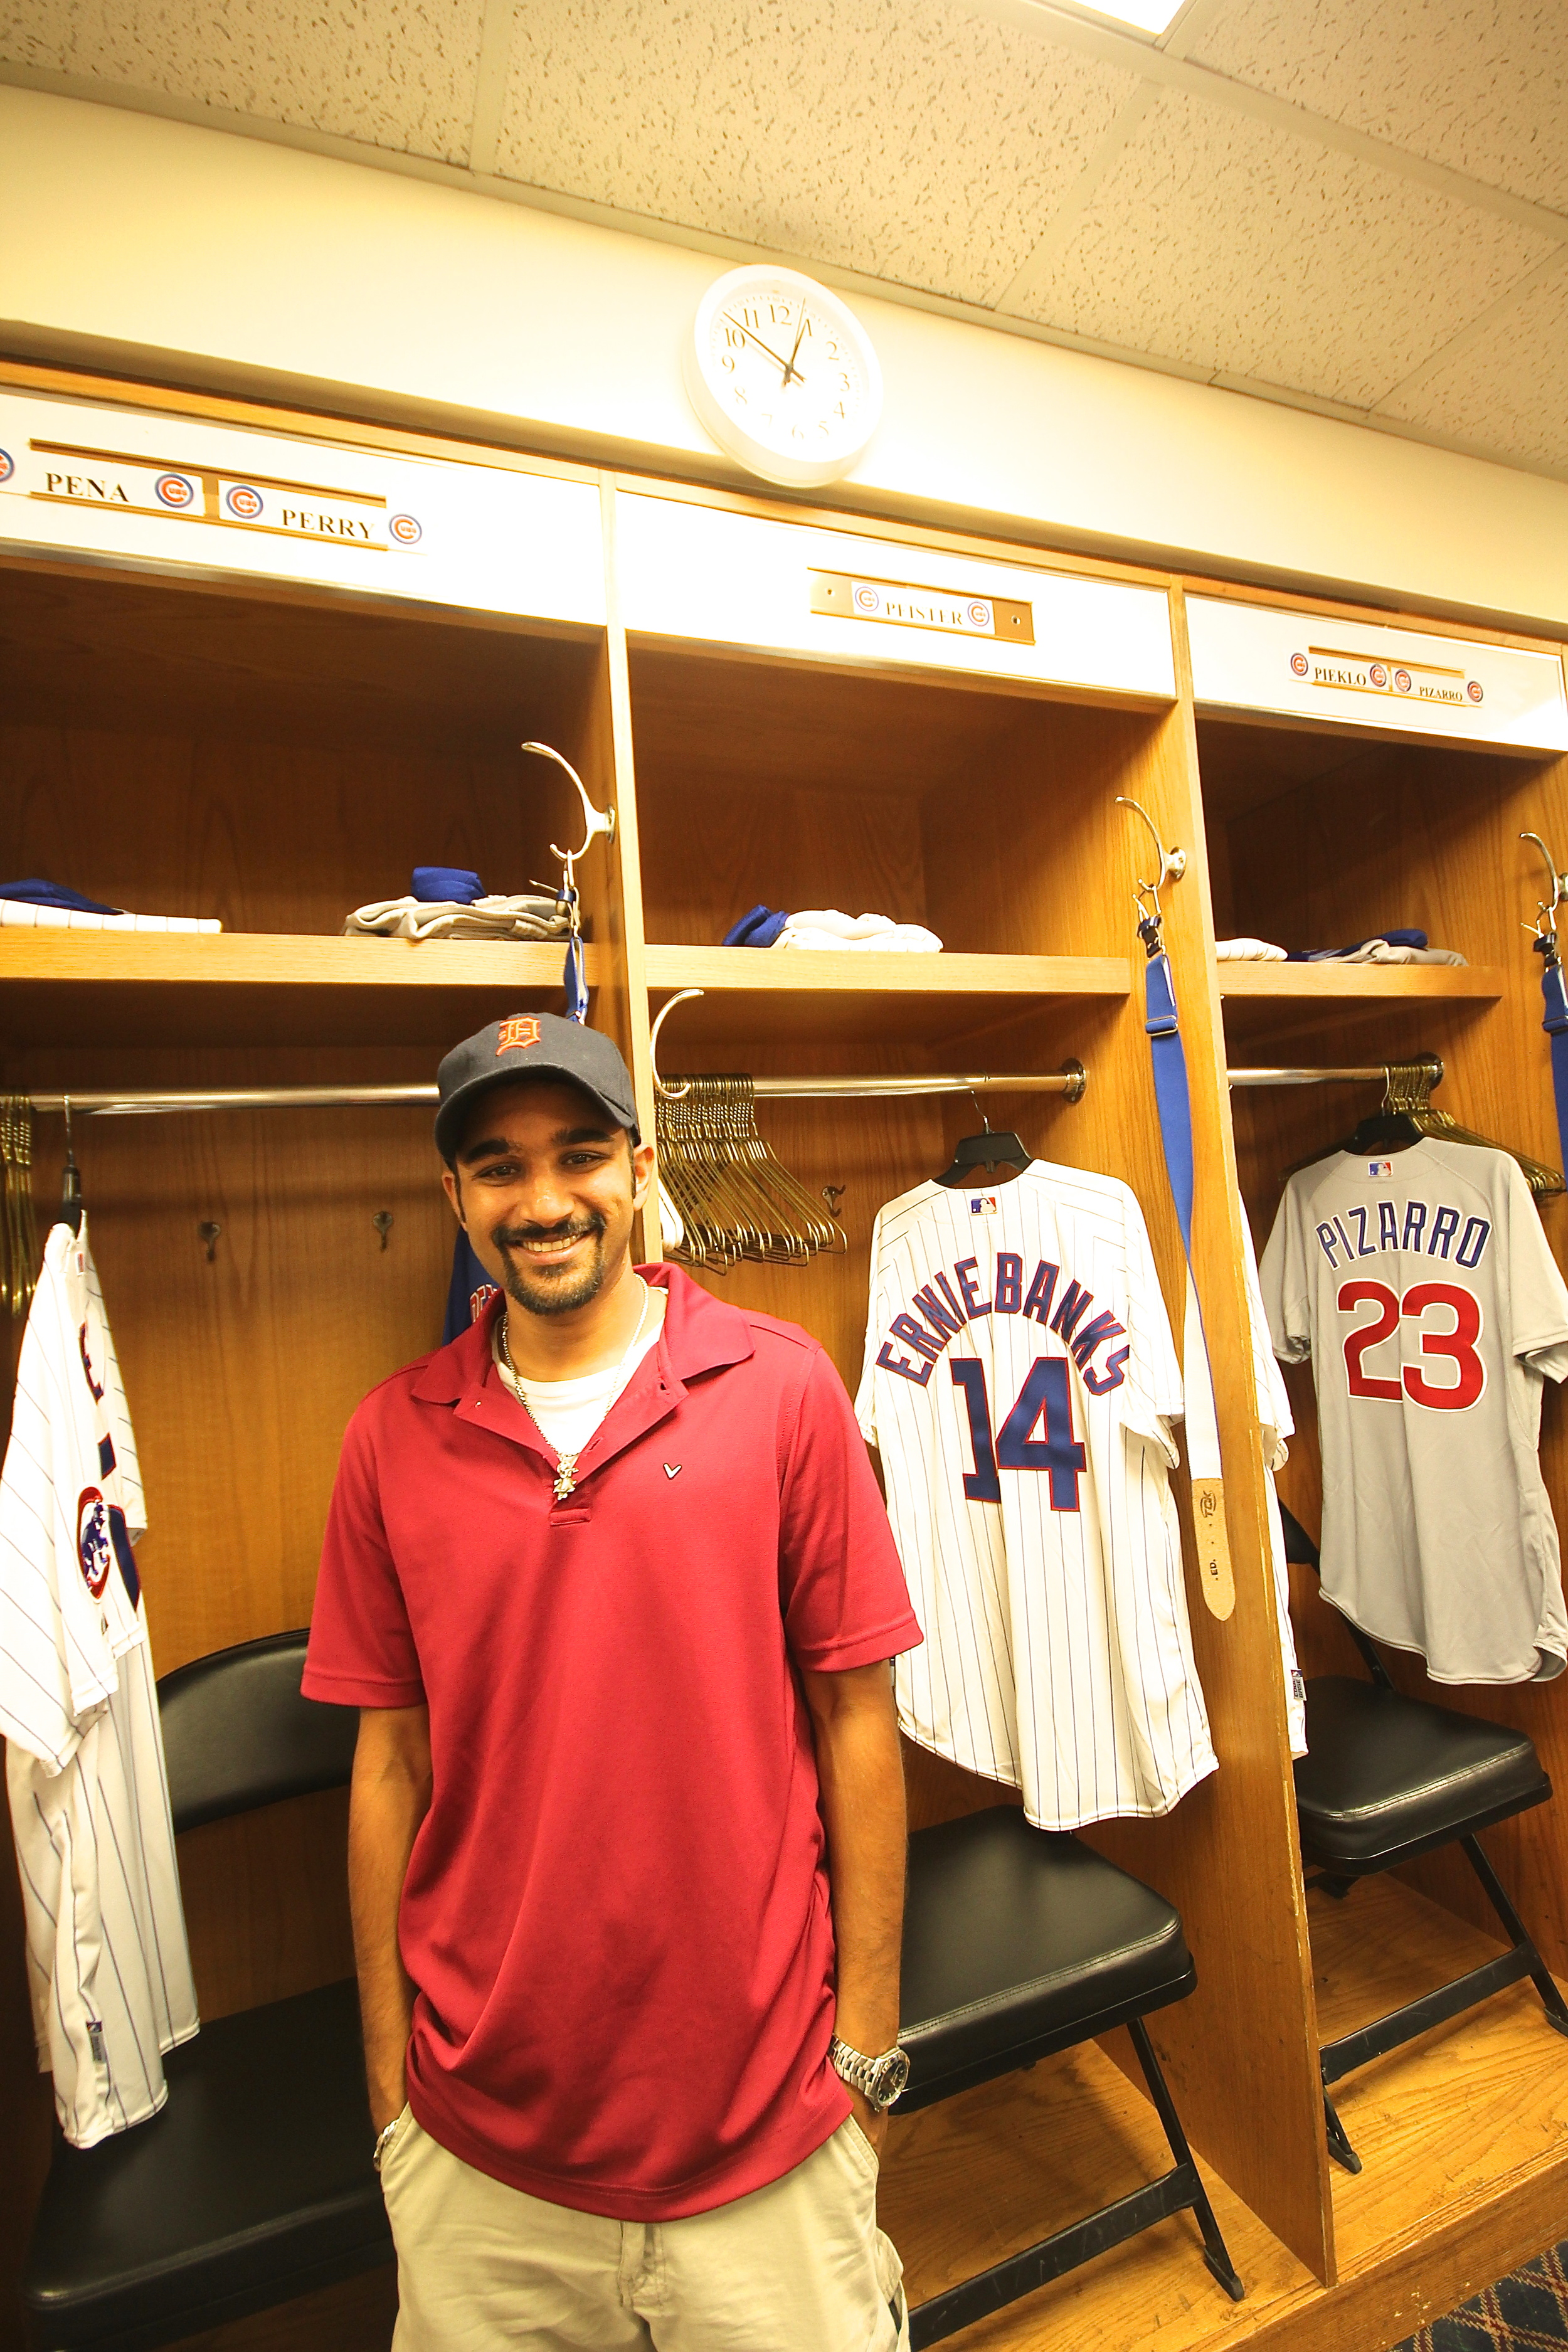 Me in the visitor's clubhouse